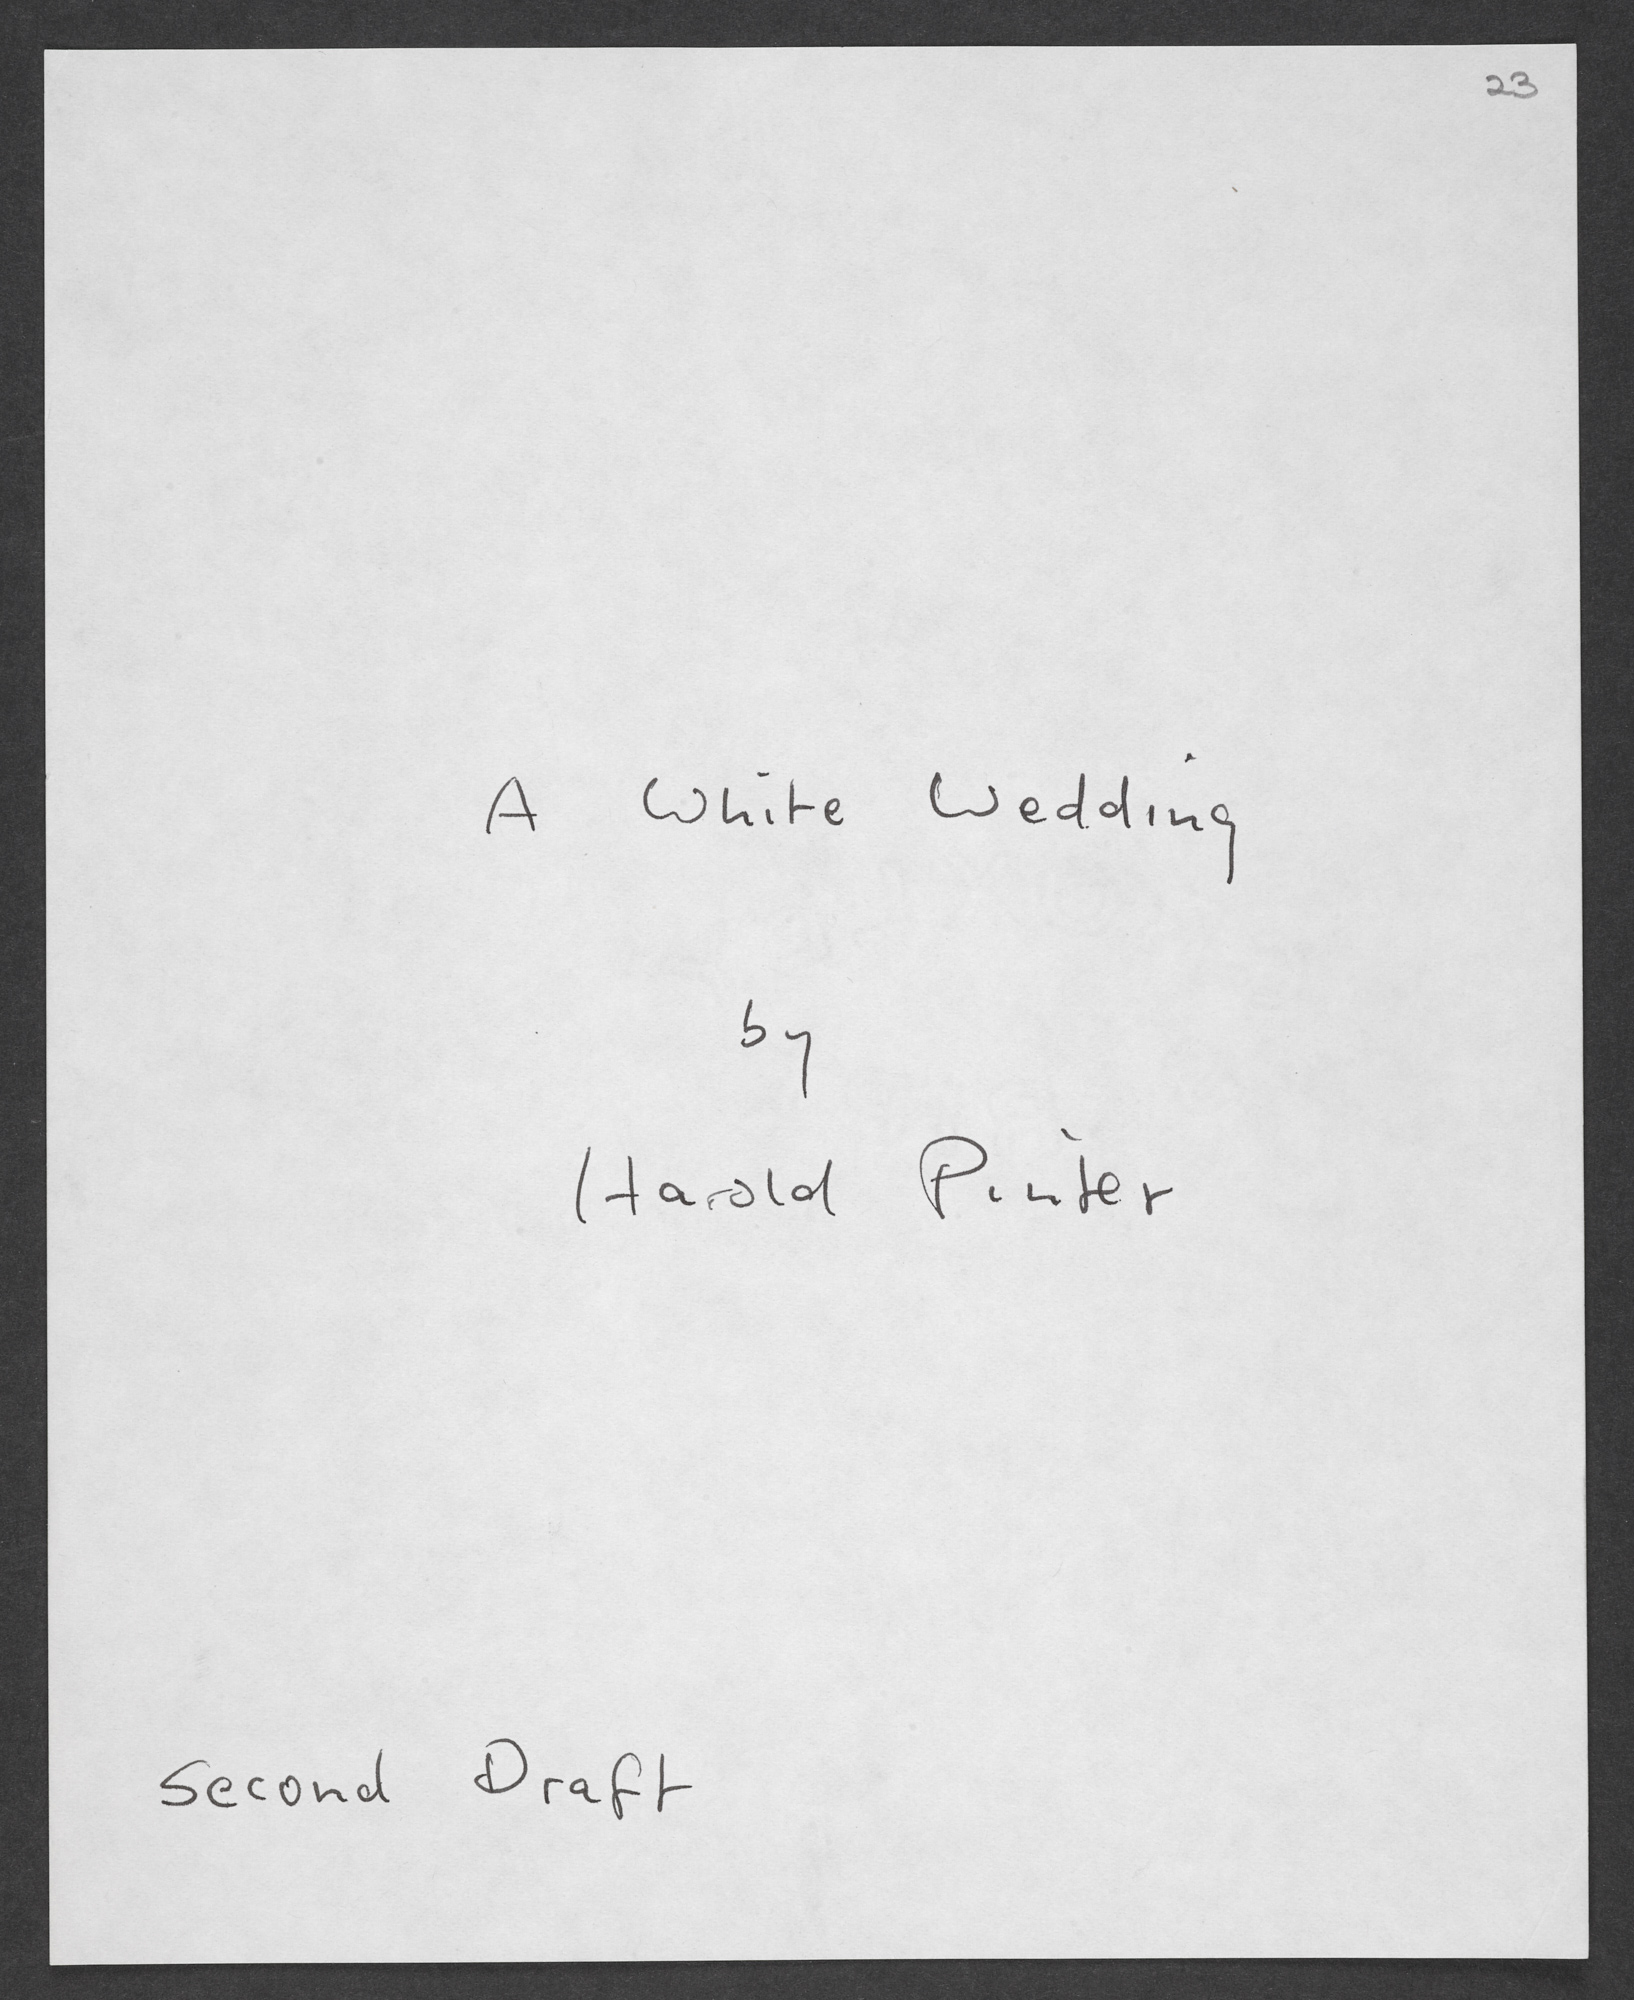 Typescript draft of Betrayal by Harold Pinter with revisions